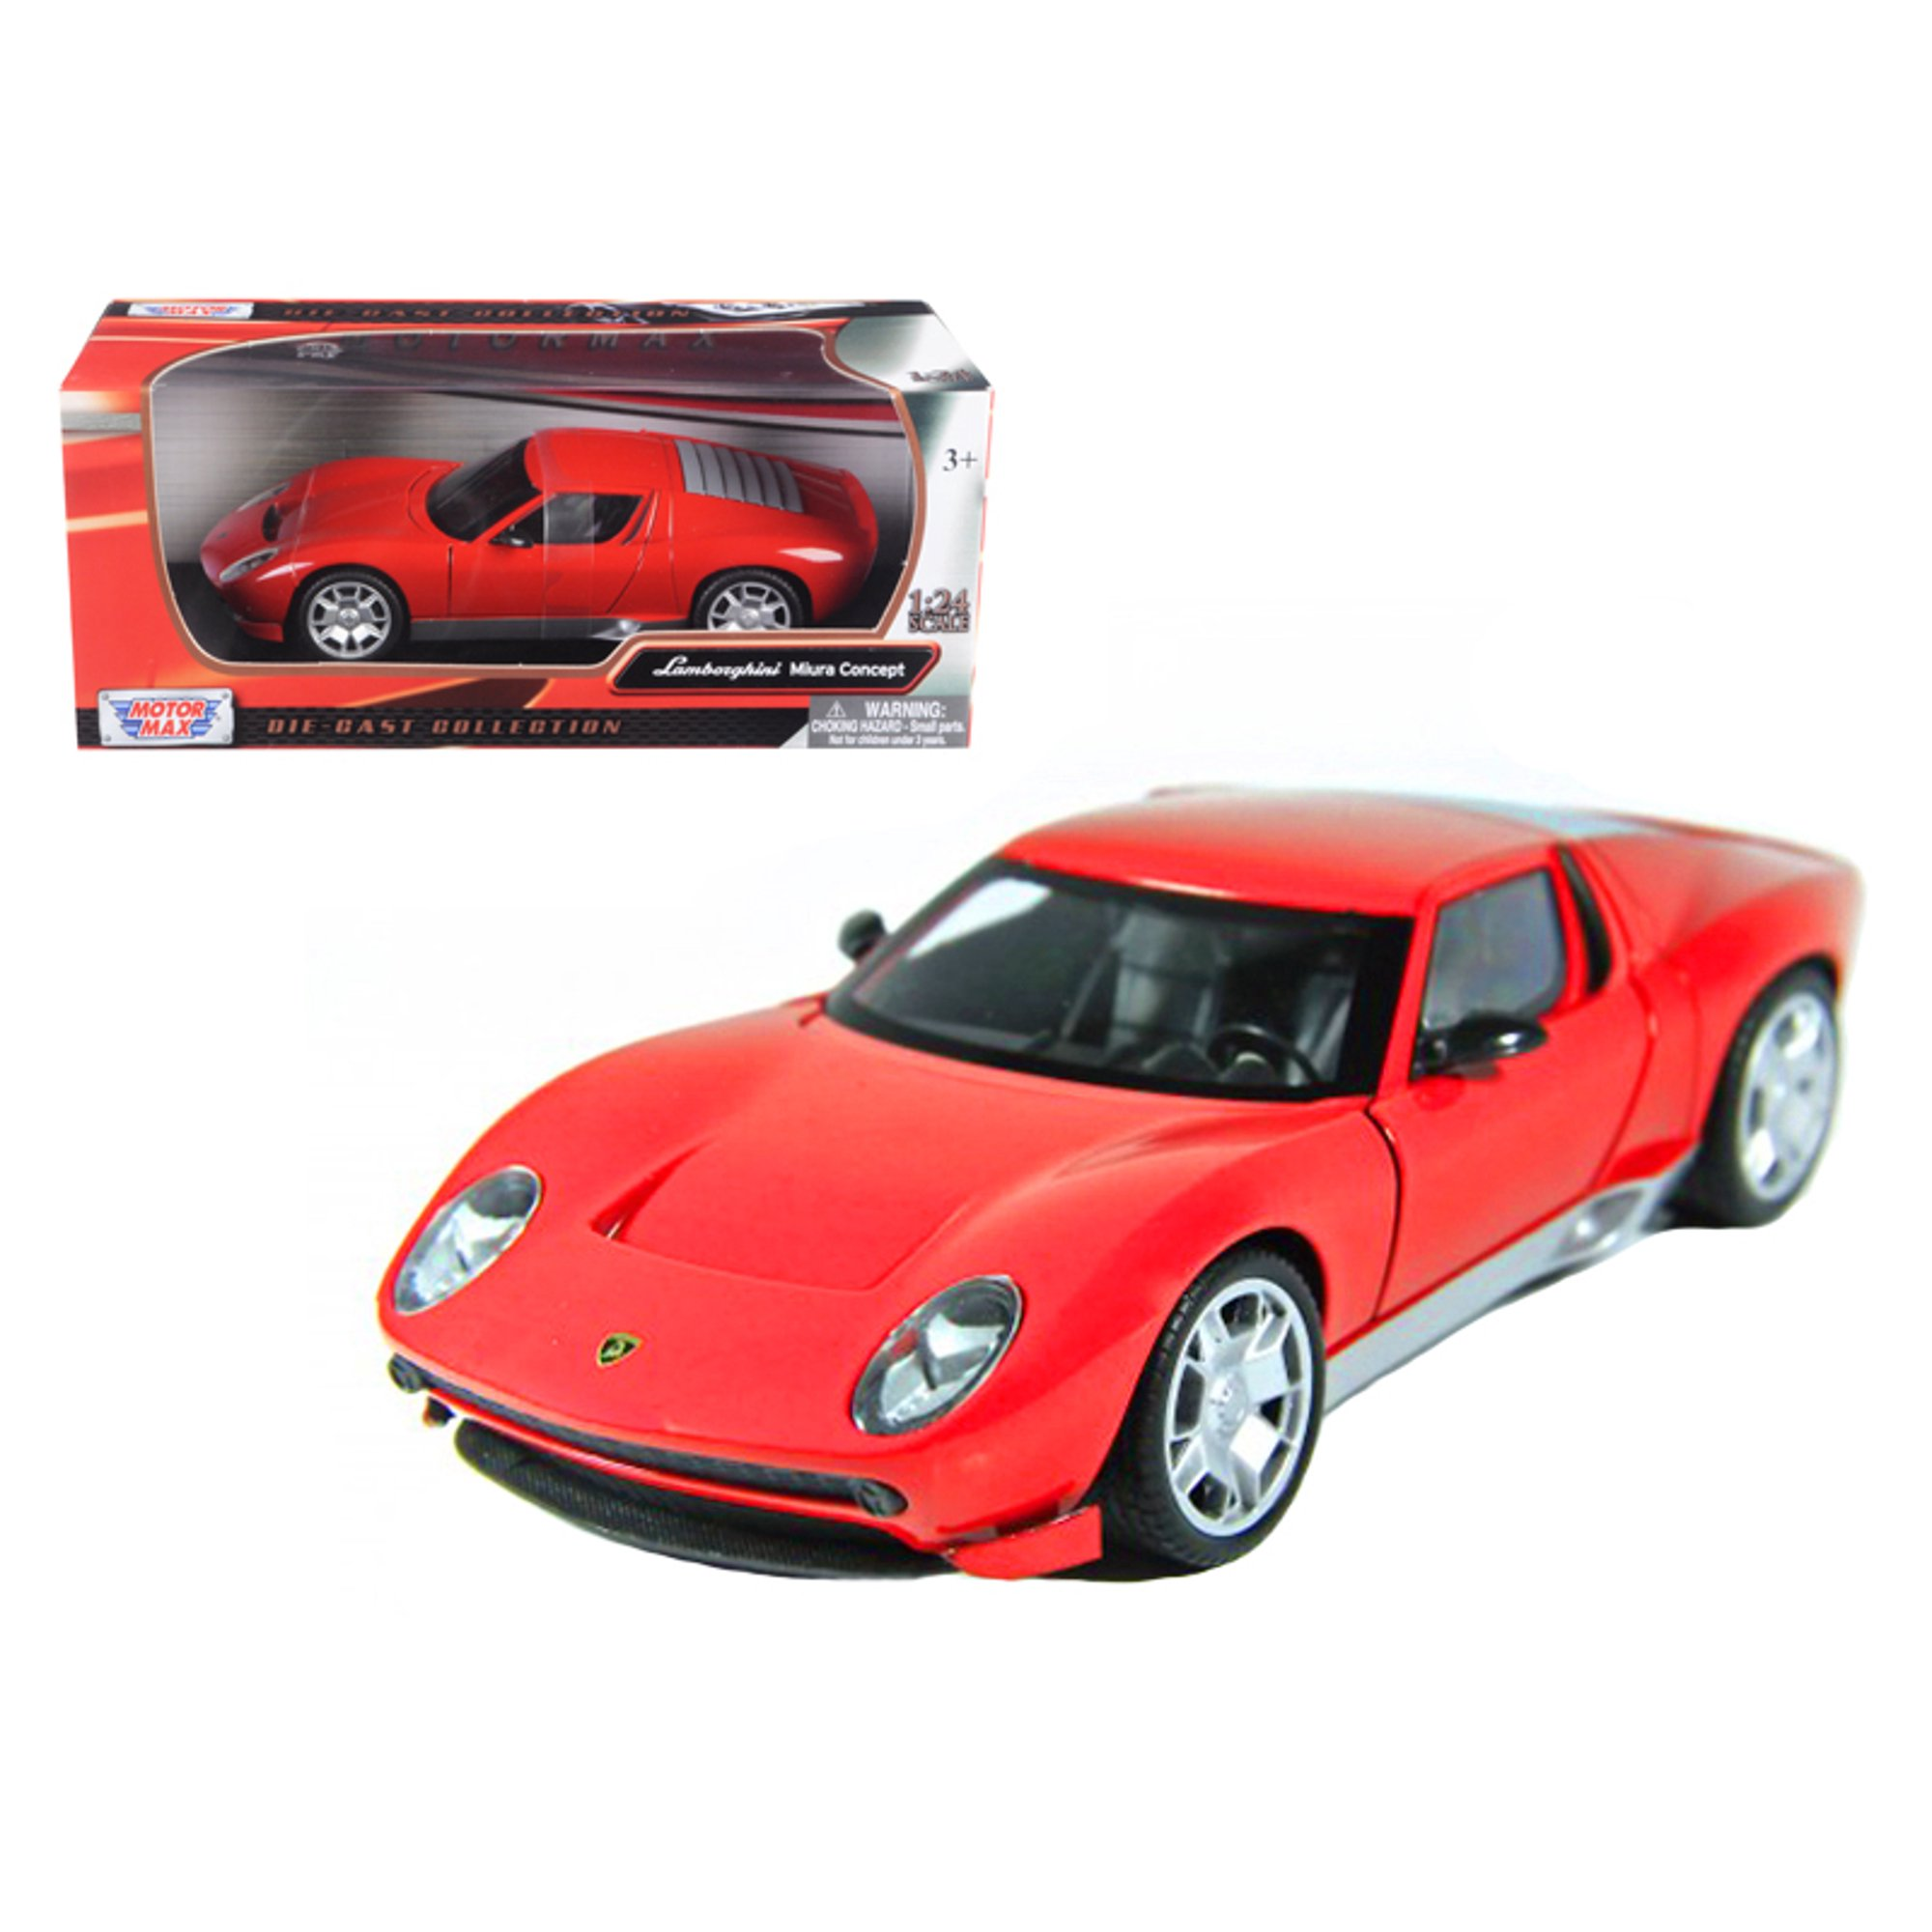 Lamborghini Miura Concept Red 1 24 Diecast Car Model By Motormax